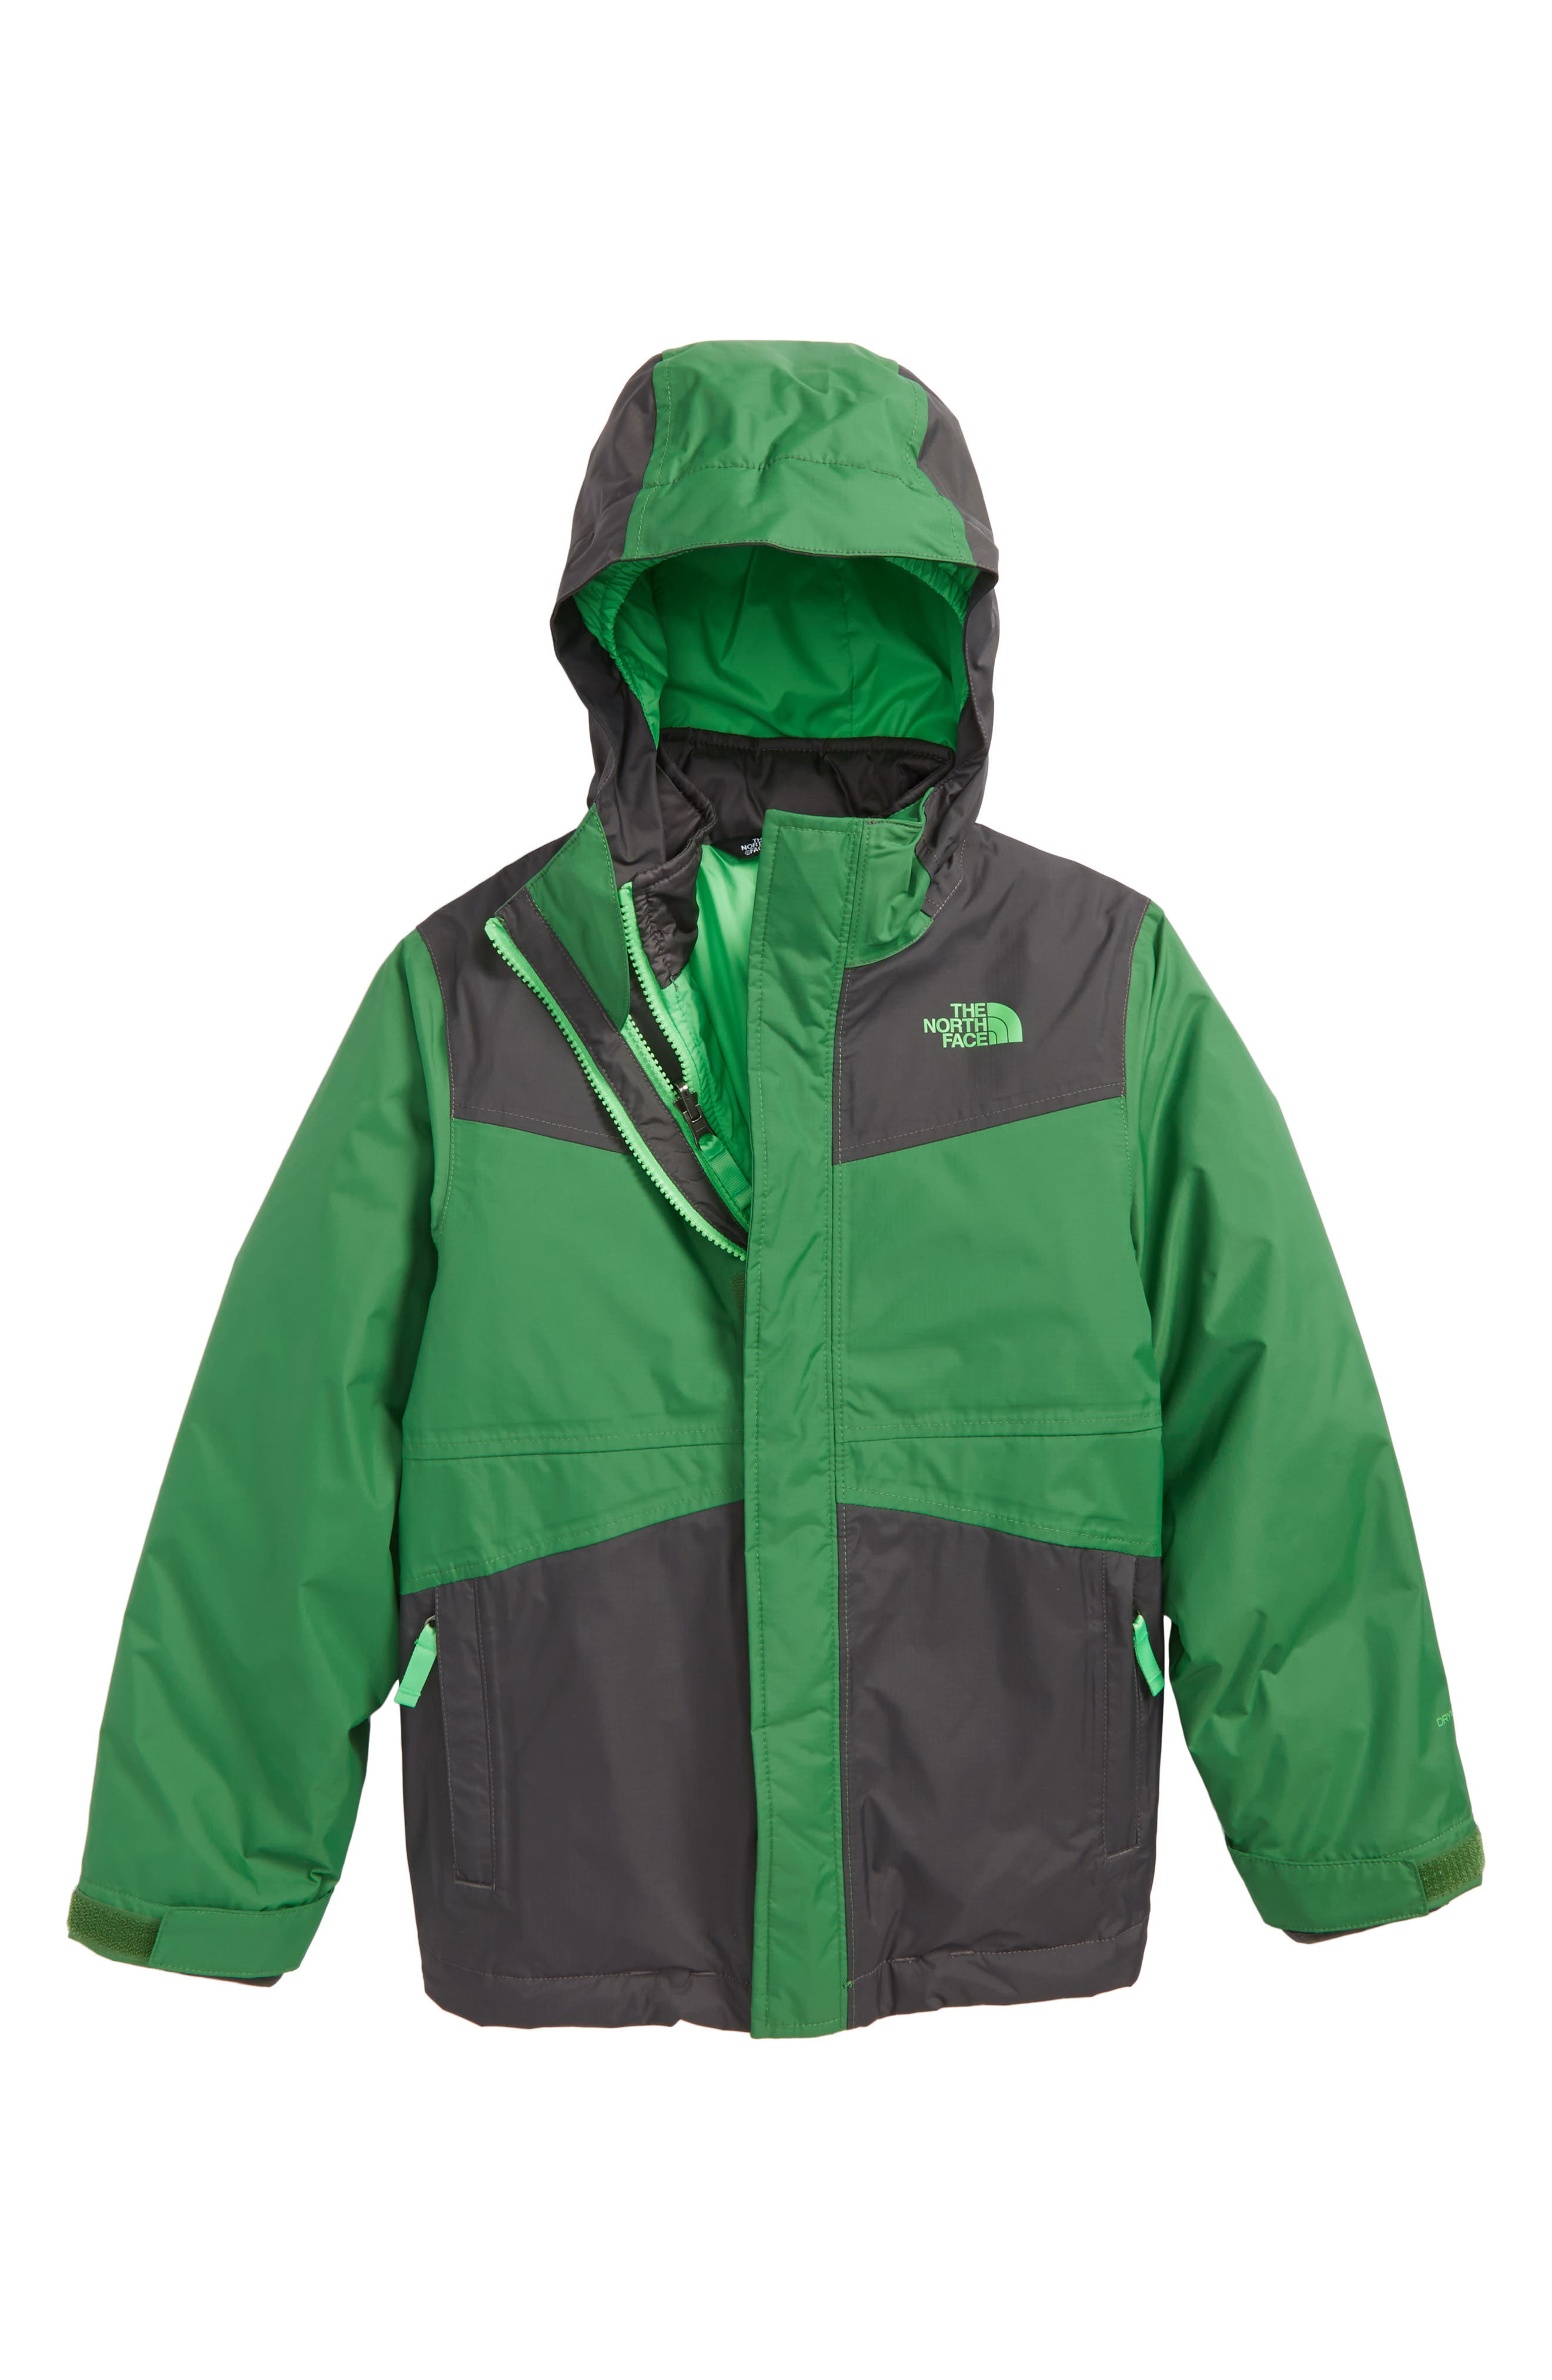 Main Image - The North Face East Ridge Triclimate® Waterproof 3-in-1 Jacket (Big Boys)